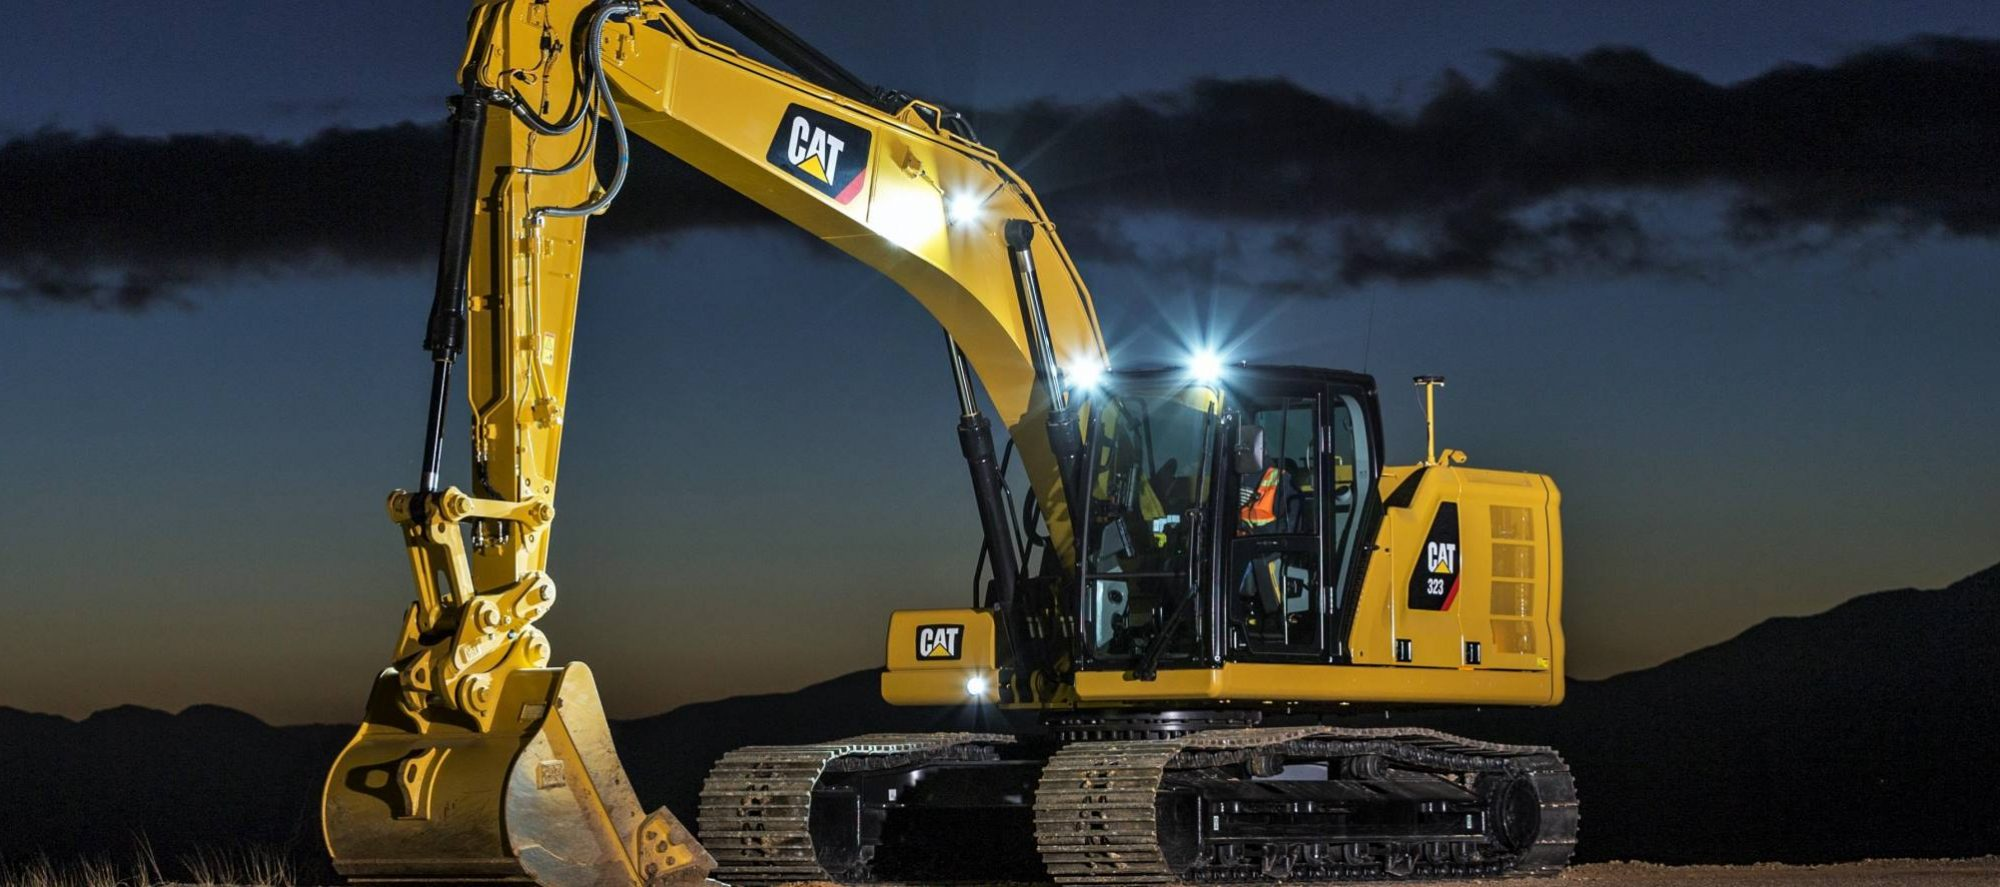 NEXT GENERATION EXCAVATORS ARE HERE